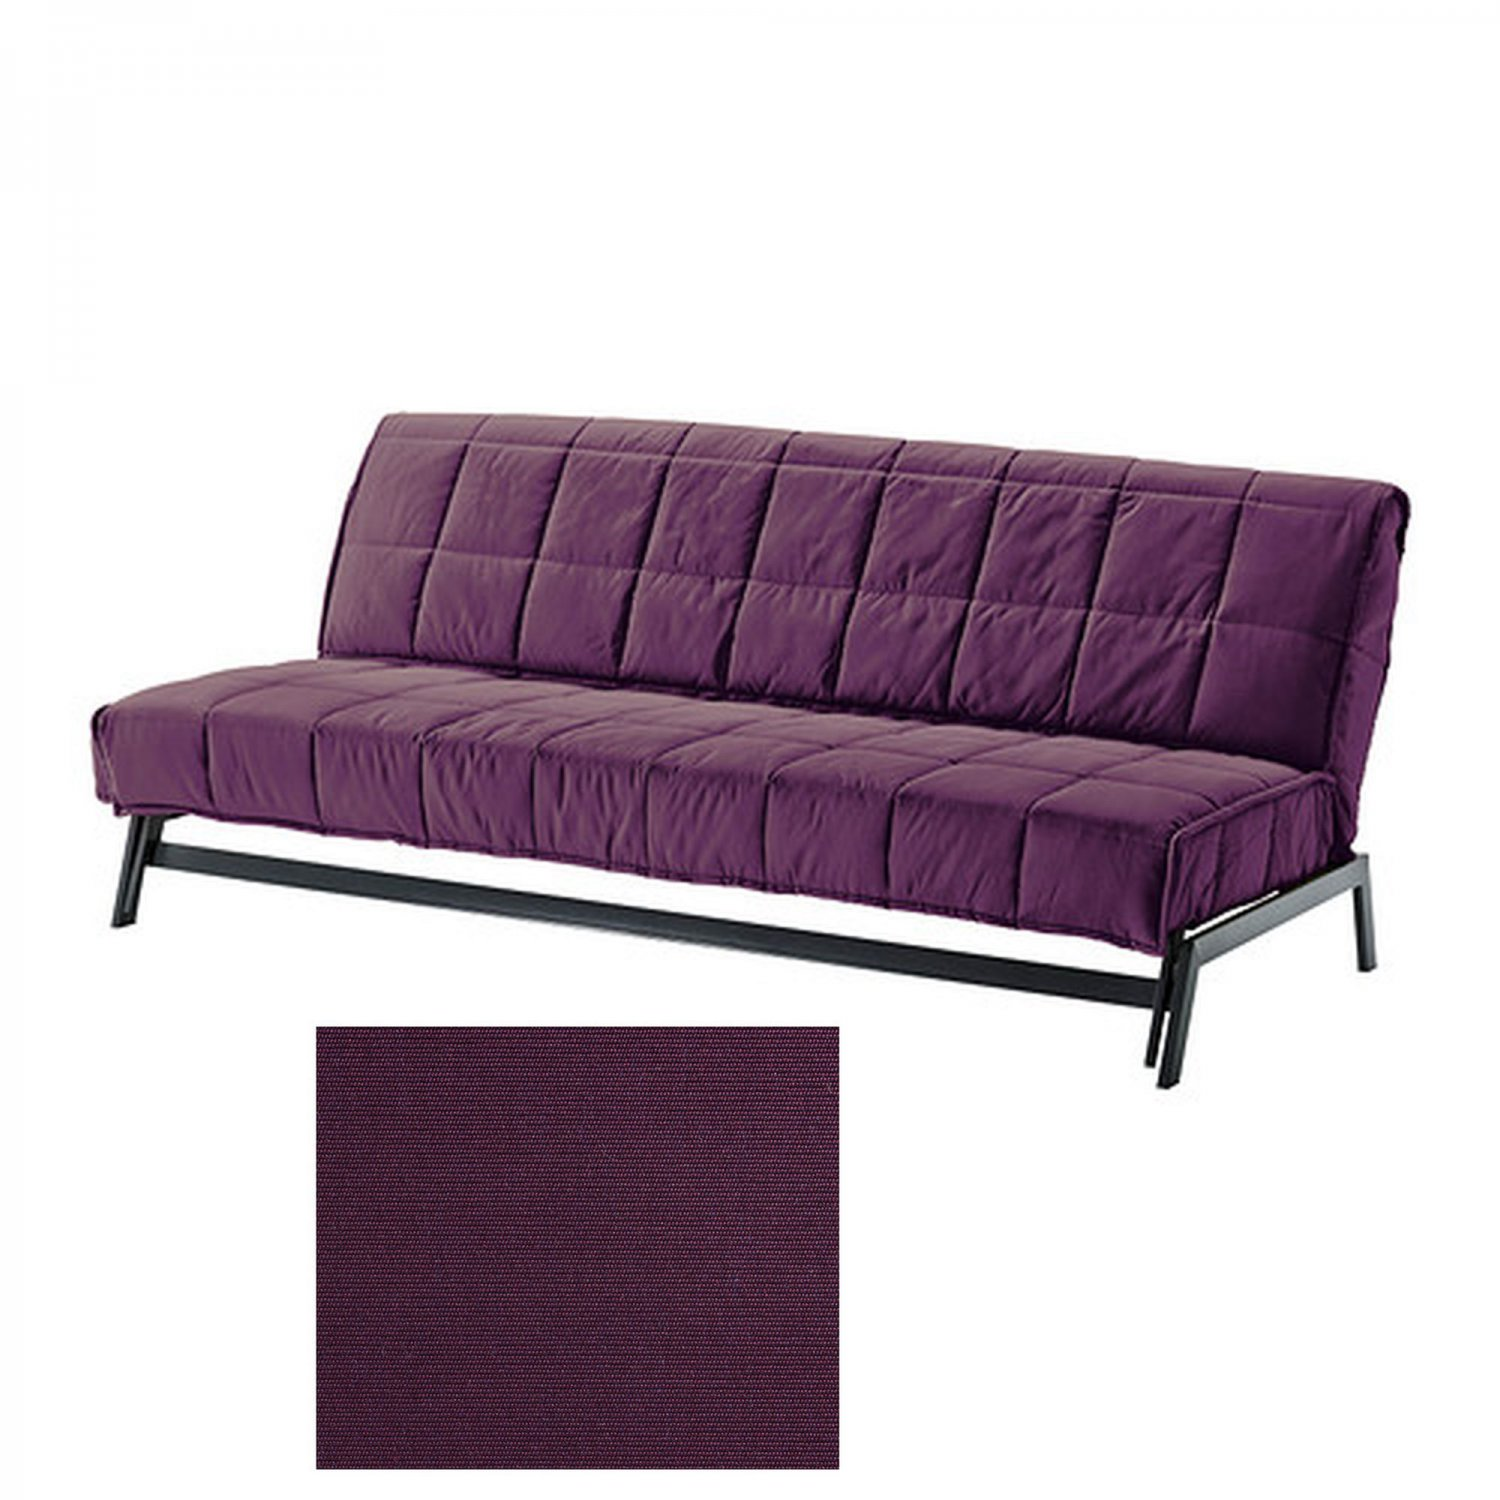 ikea karlaby sofa bed sofabed slipcover cover sivik dark lilac purple. Black Bedroom Furniture Sets. Home Design Ideas